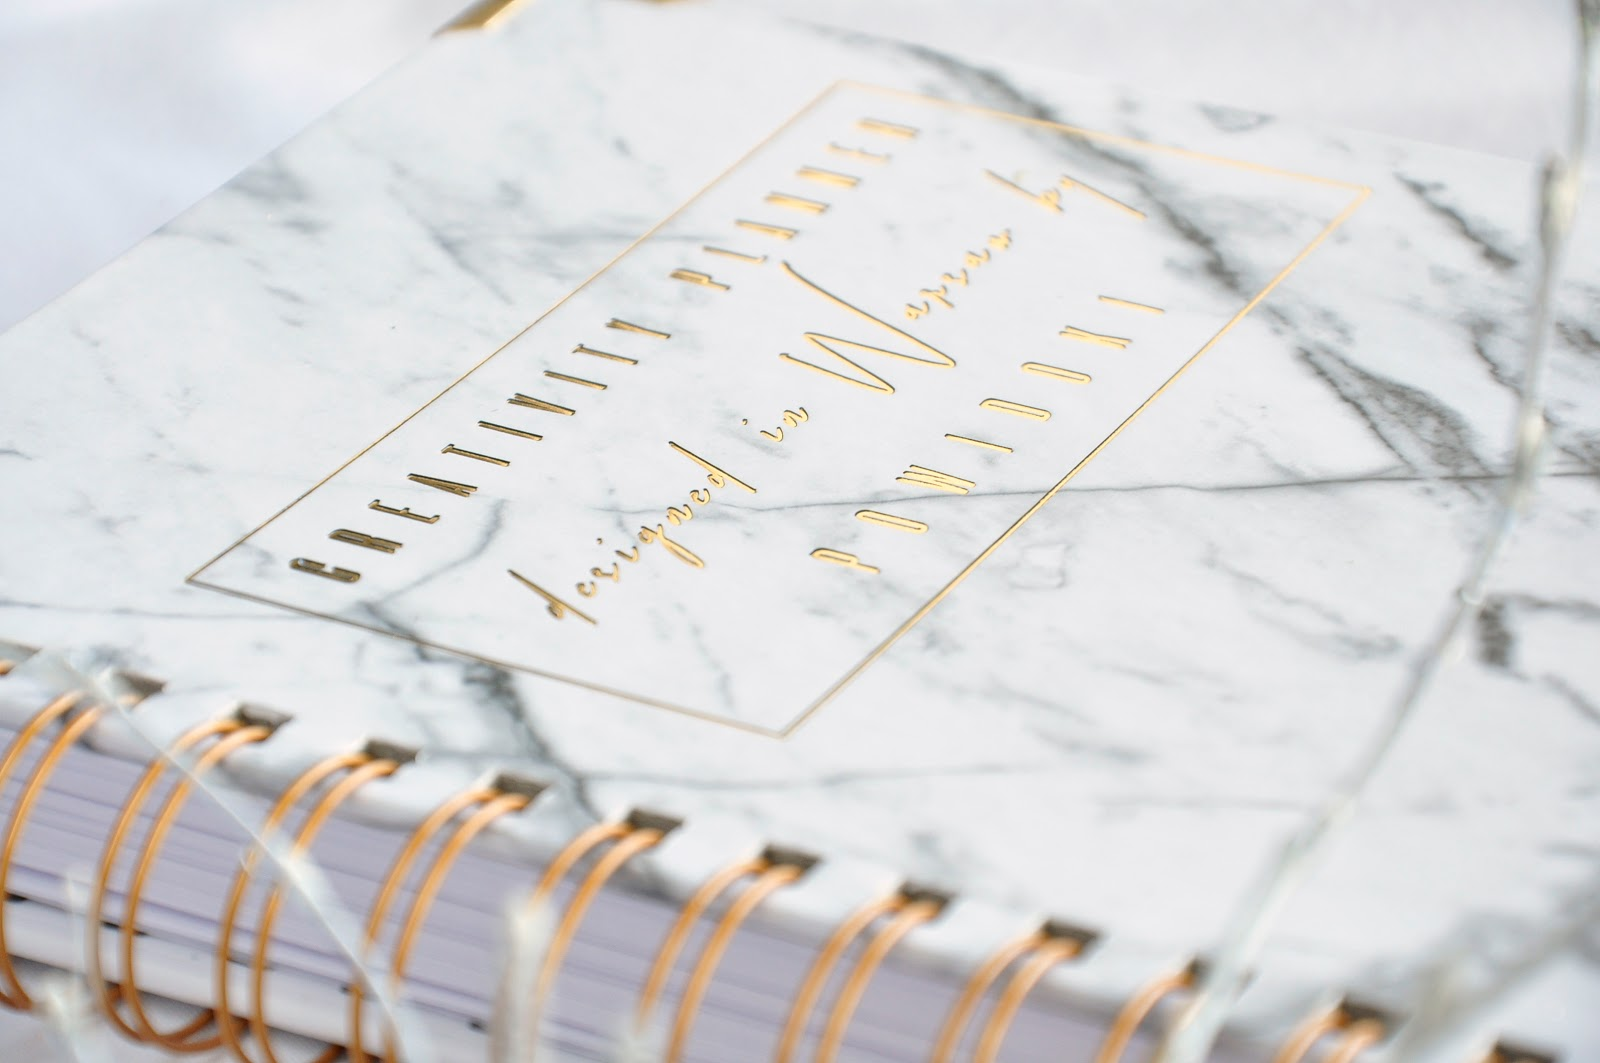 Creativity Planner by Powidoki